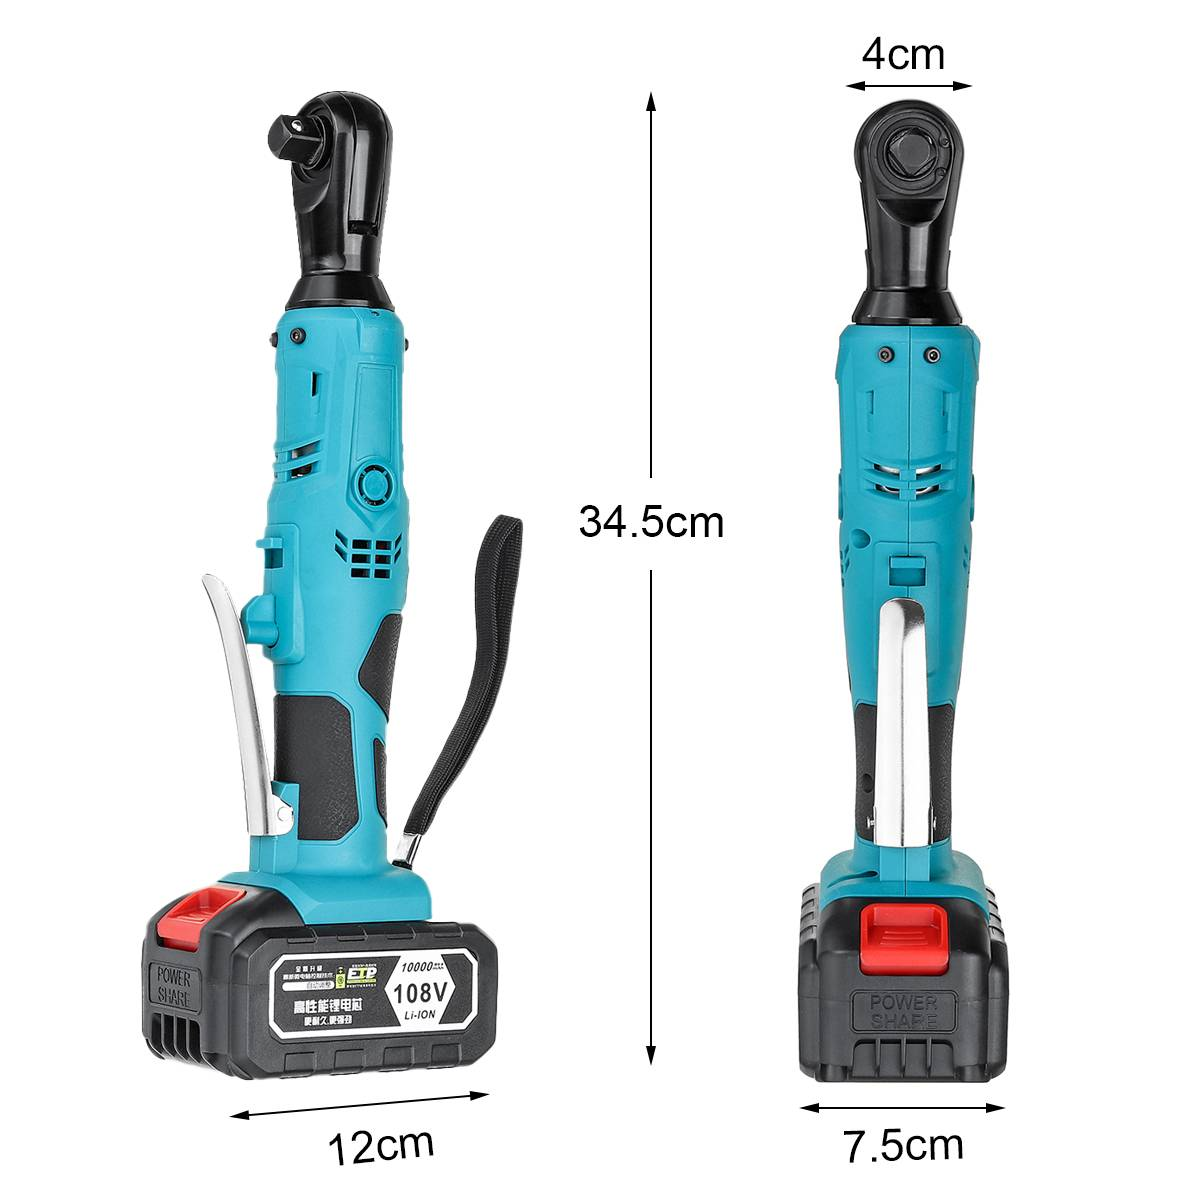 160N With Cordless Repair 2 Wrench Angle Charger Wrench Right Ratchet Wrench Tool Kit Battery 108V Electric Rechargeable M